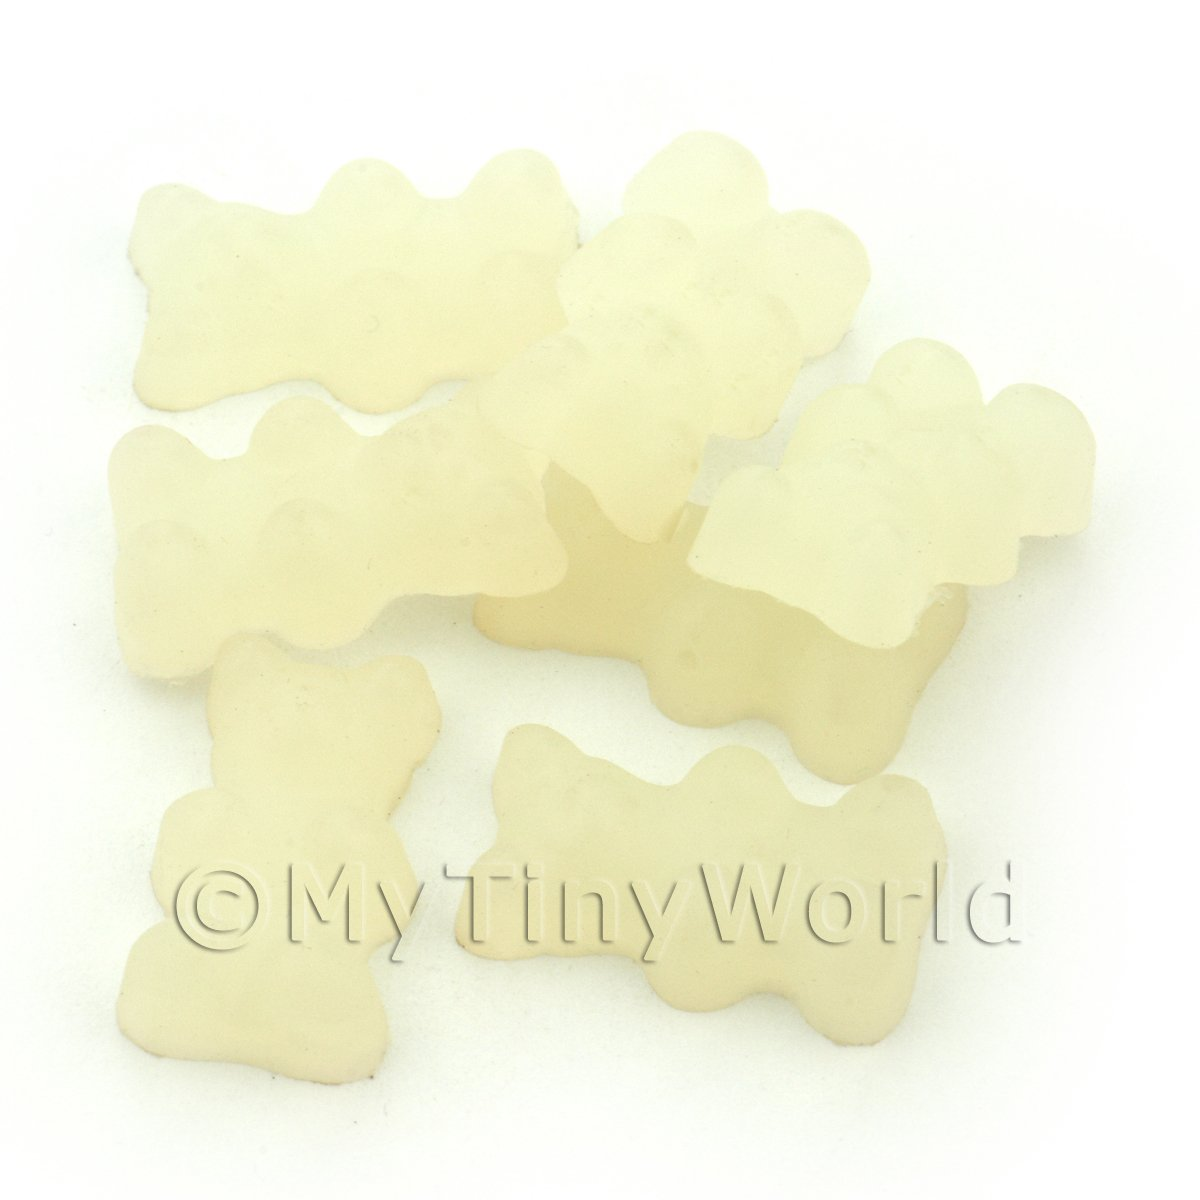 Translucent White Jelly Bear Charm For Jewellery